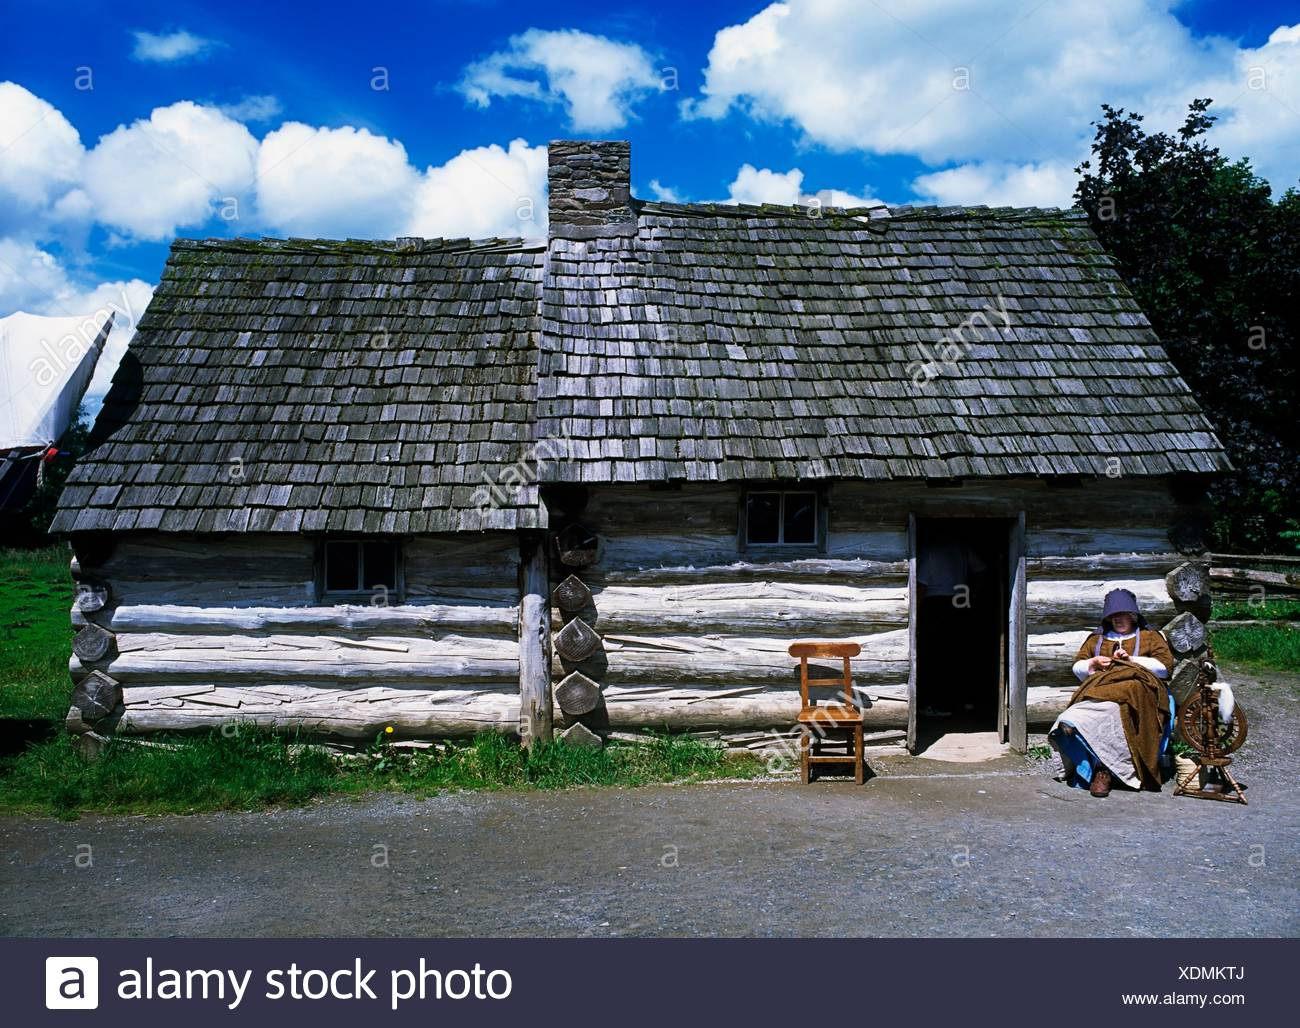 Frontier Log Cabin, American Folk Park, Omagh, Co Tyrone, Ireland. - Stock Image